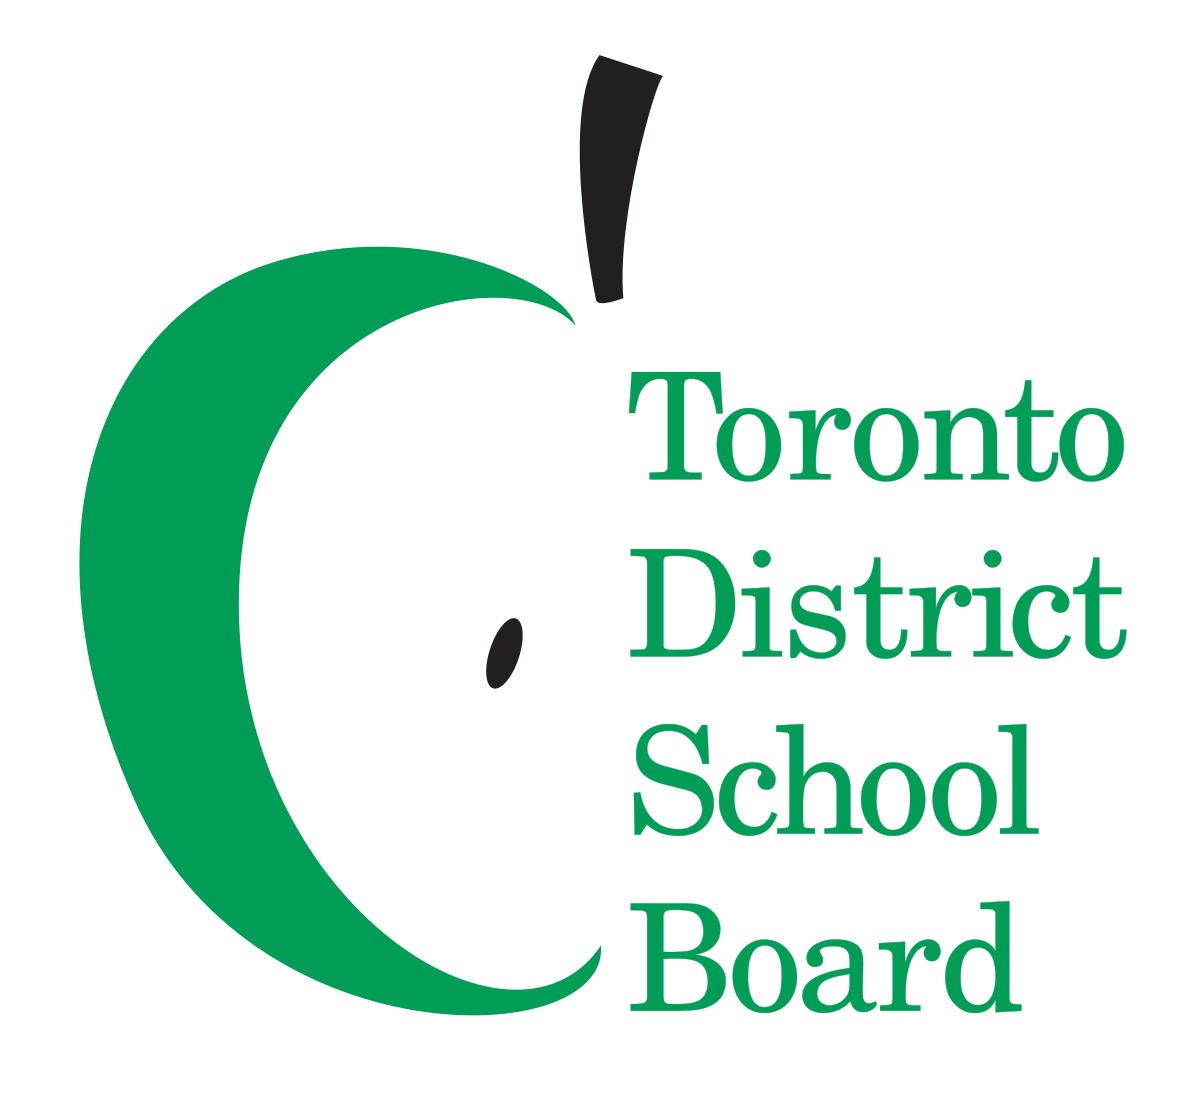 Toronto District School Board (Toronto, Ontario)